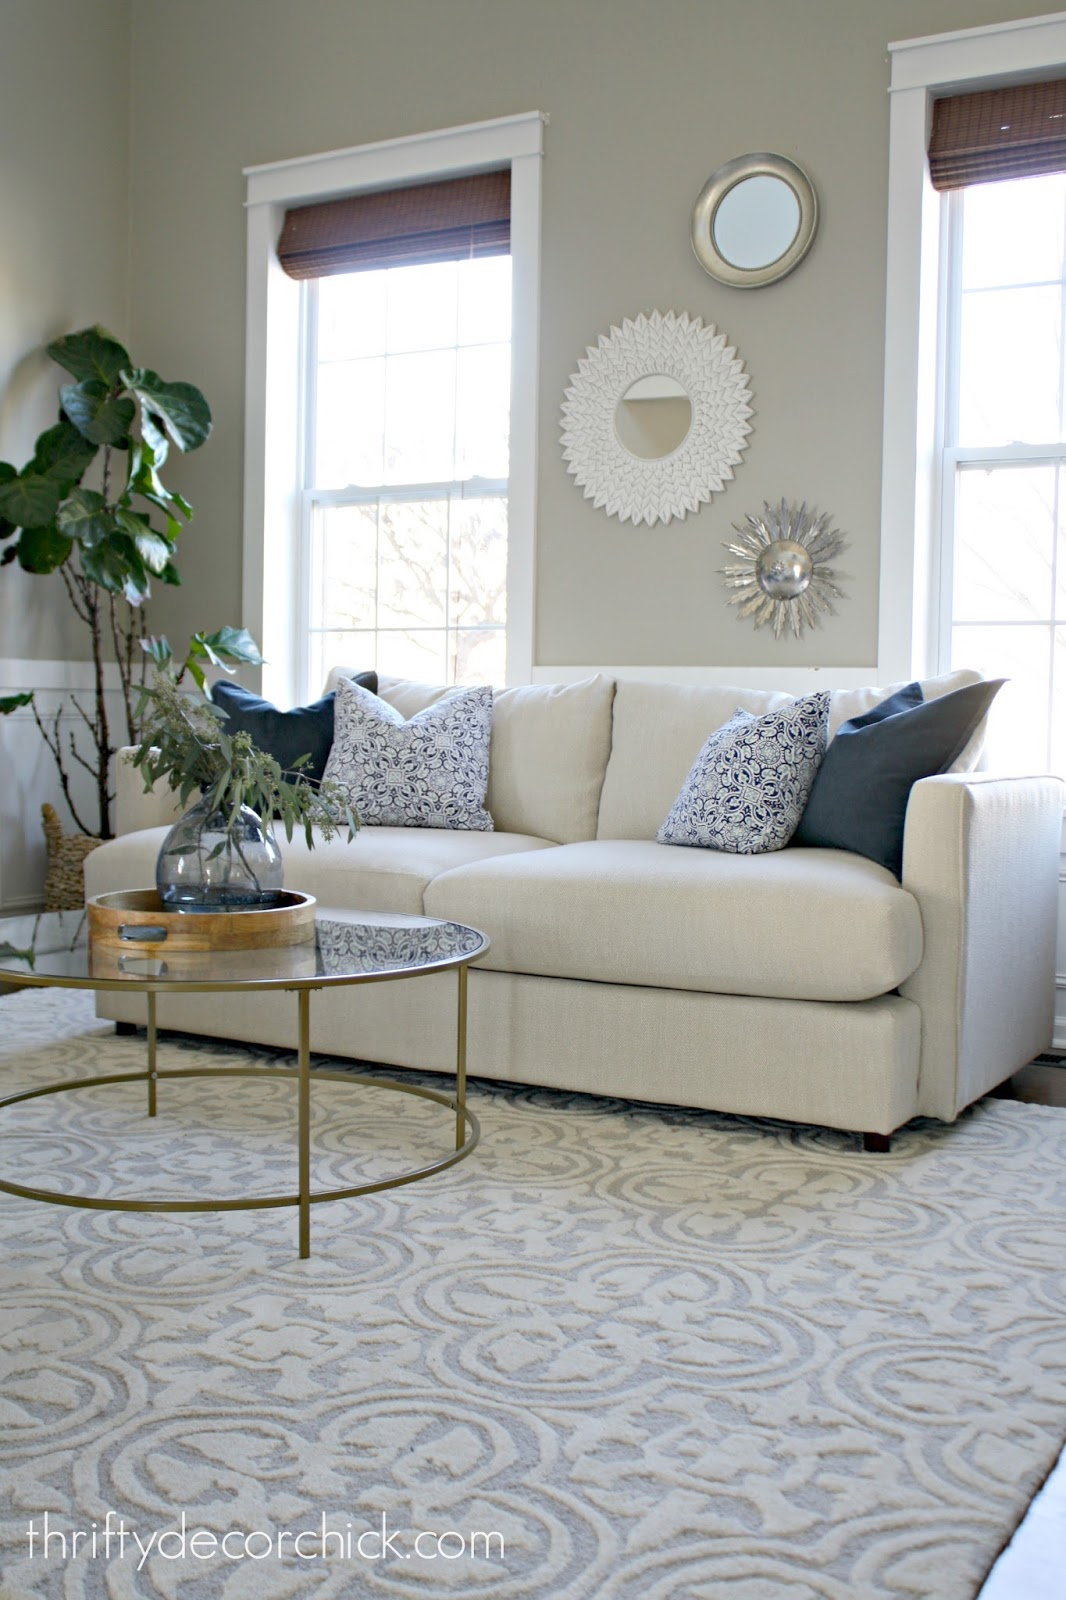 Designs For Sofas For The Living Room: One Sofa Or Two? Help Me Decide! From Thrifty Decor Chick